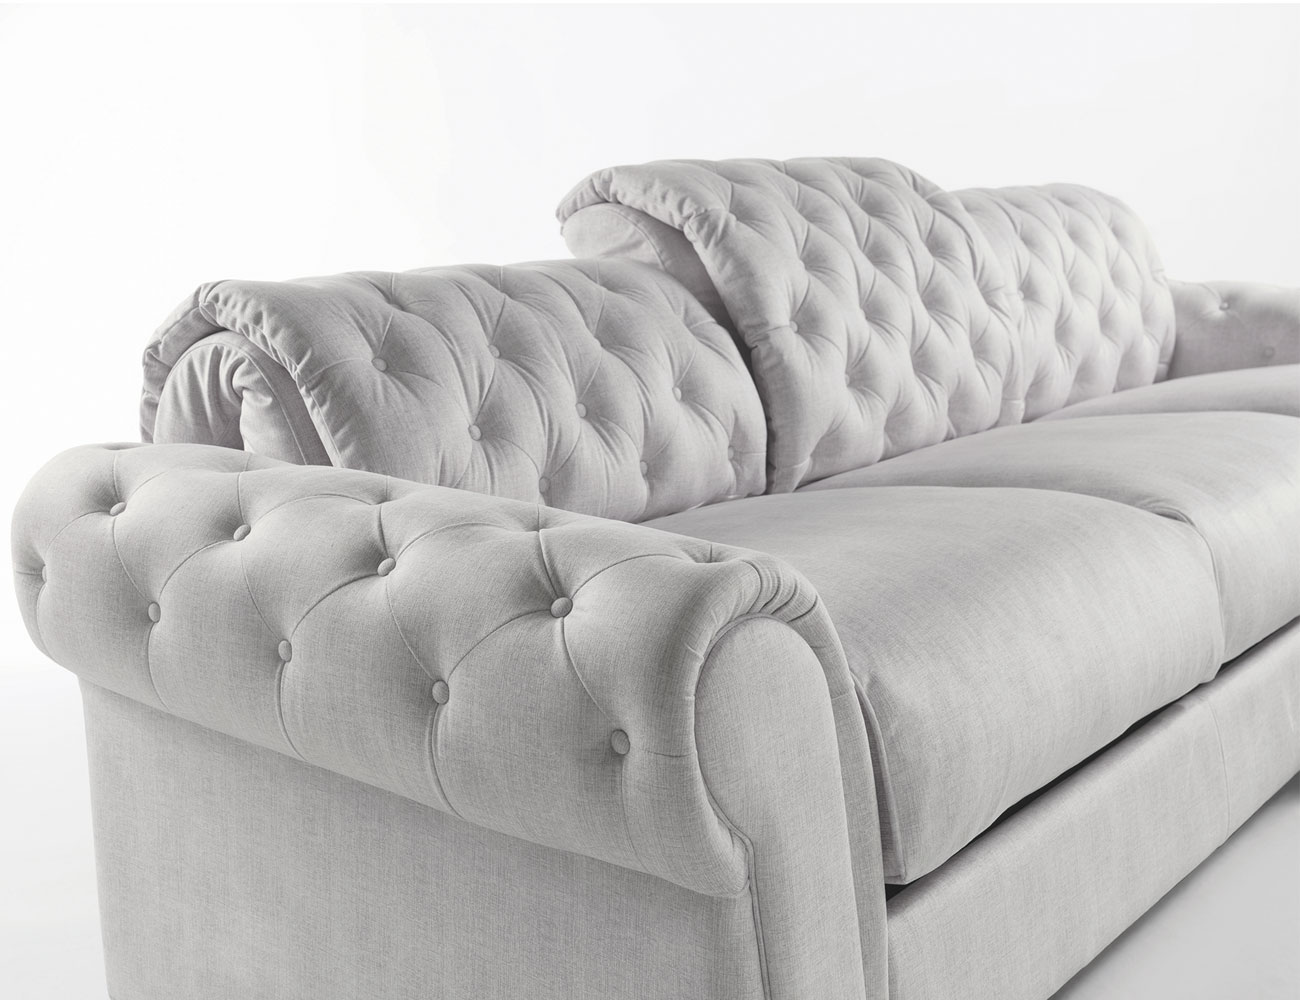 Sofa chaiselongue gran lujo decorativo capitone blanco tela 16